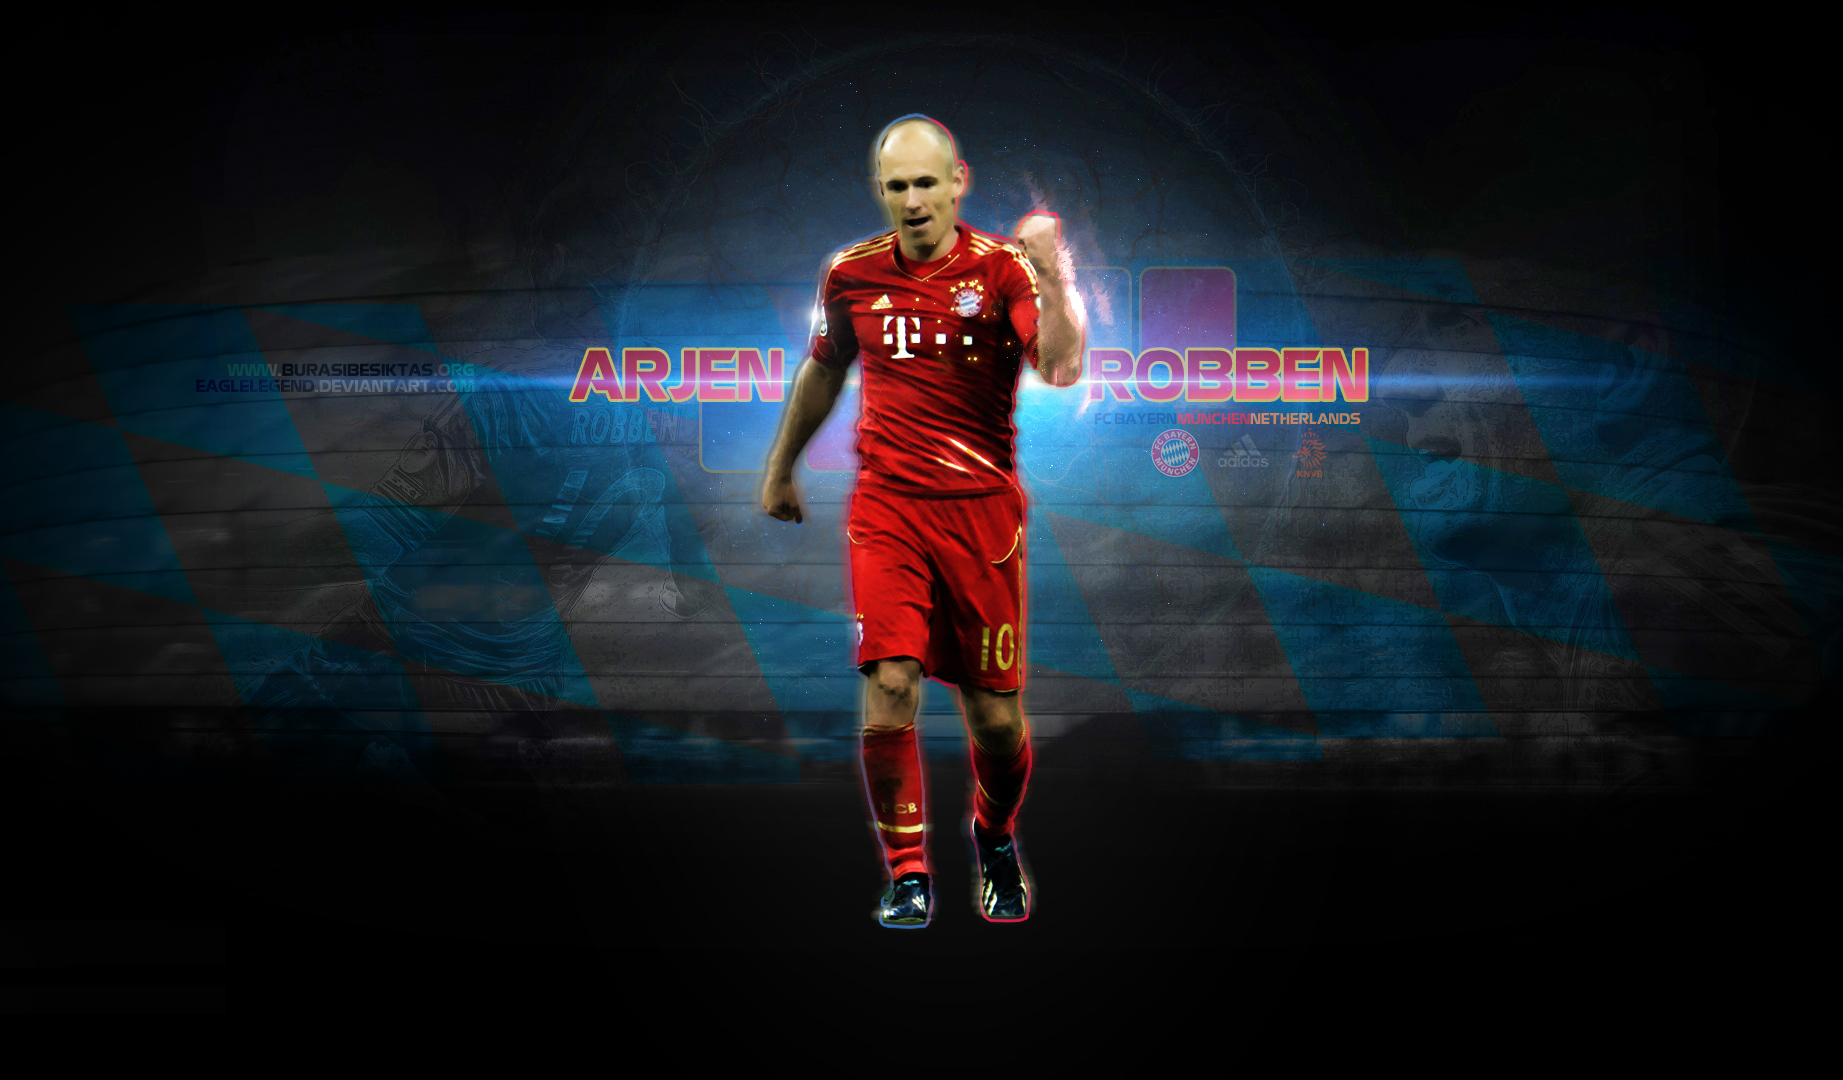 Arjen Robben Wallpaper HD The Art Mad Wallpapers 1843x1080